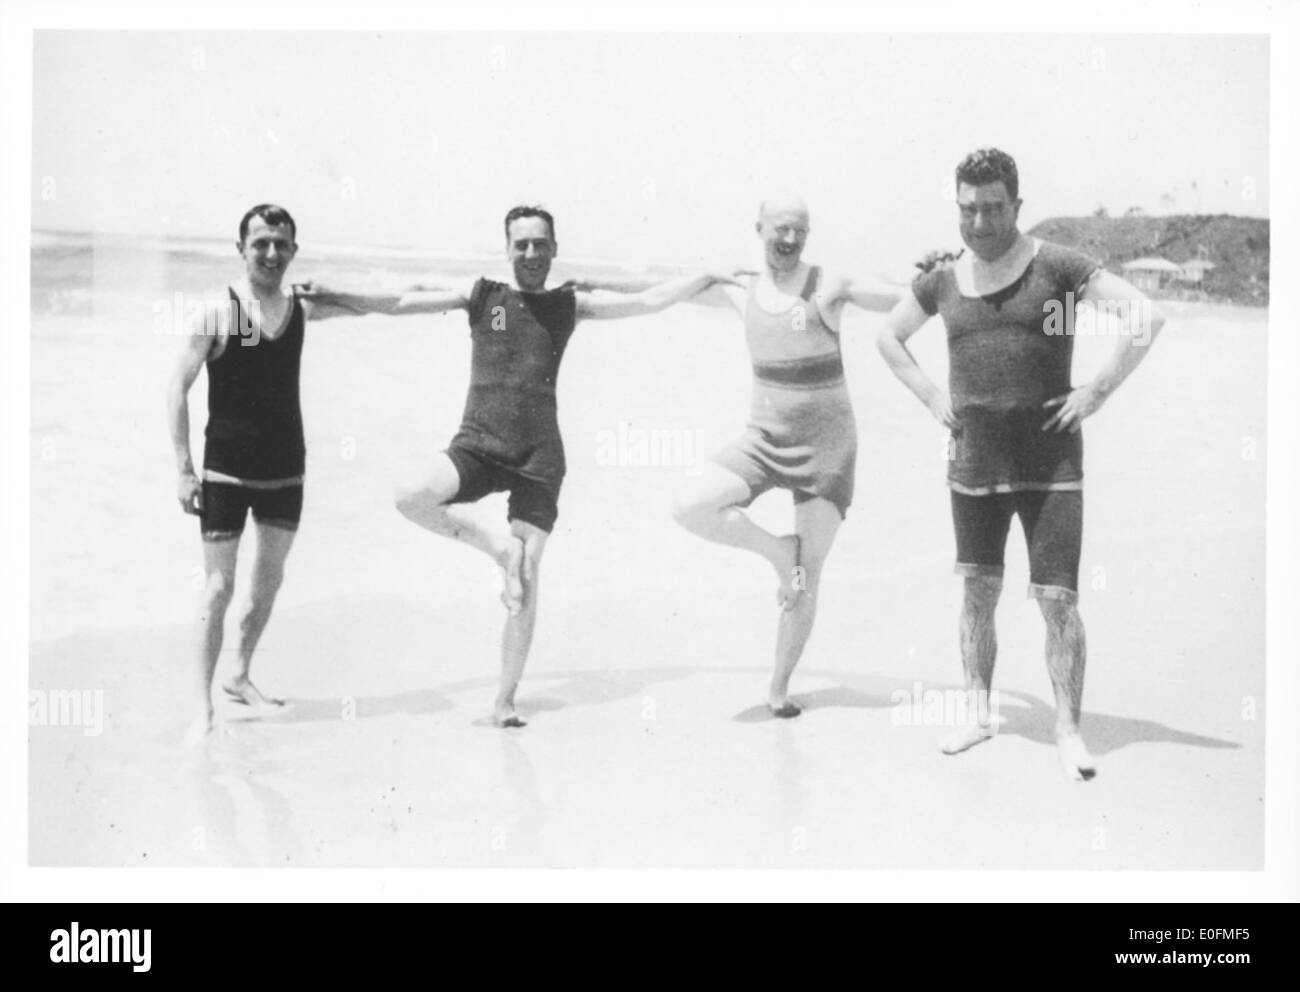 Portrait Of Four Men In Swimming Costumes On A Beach During The